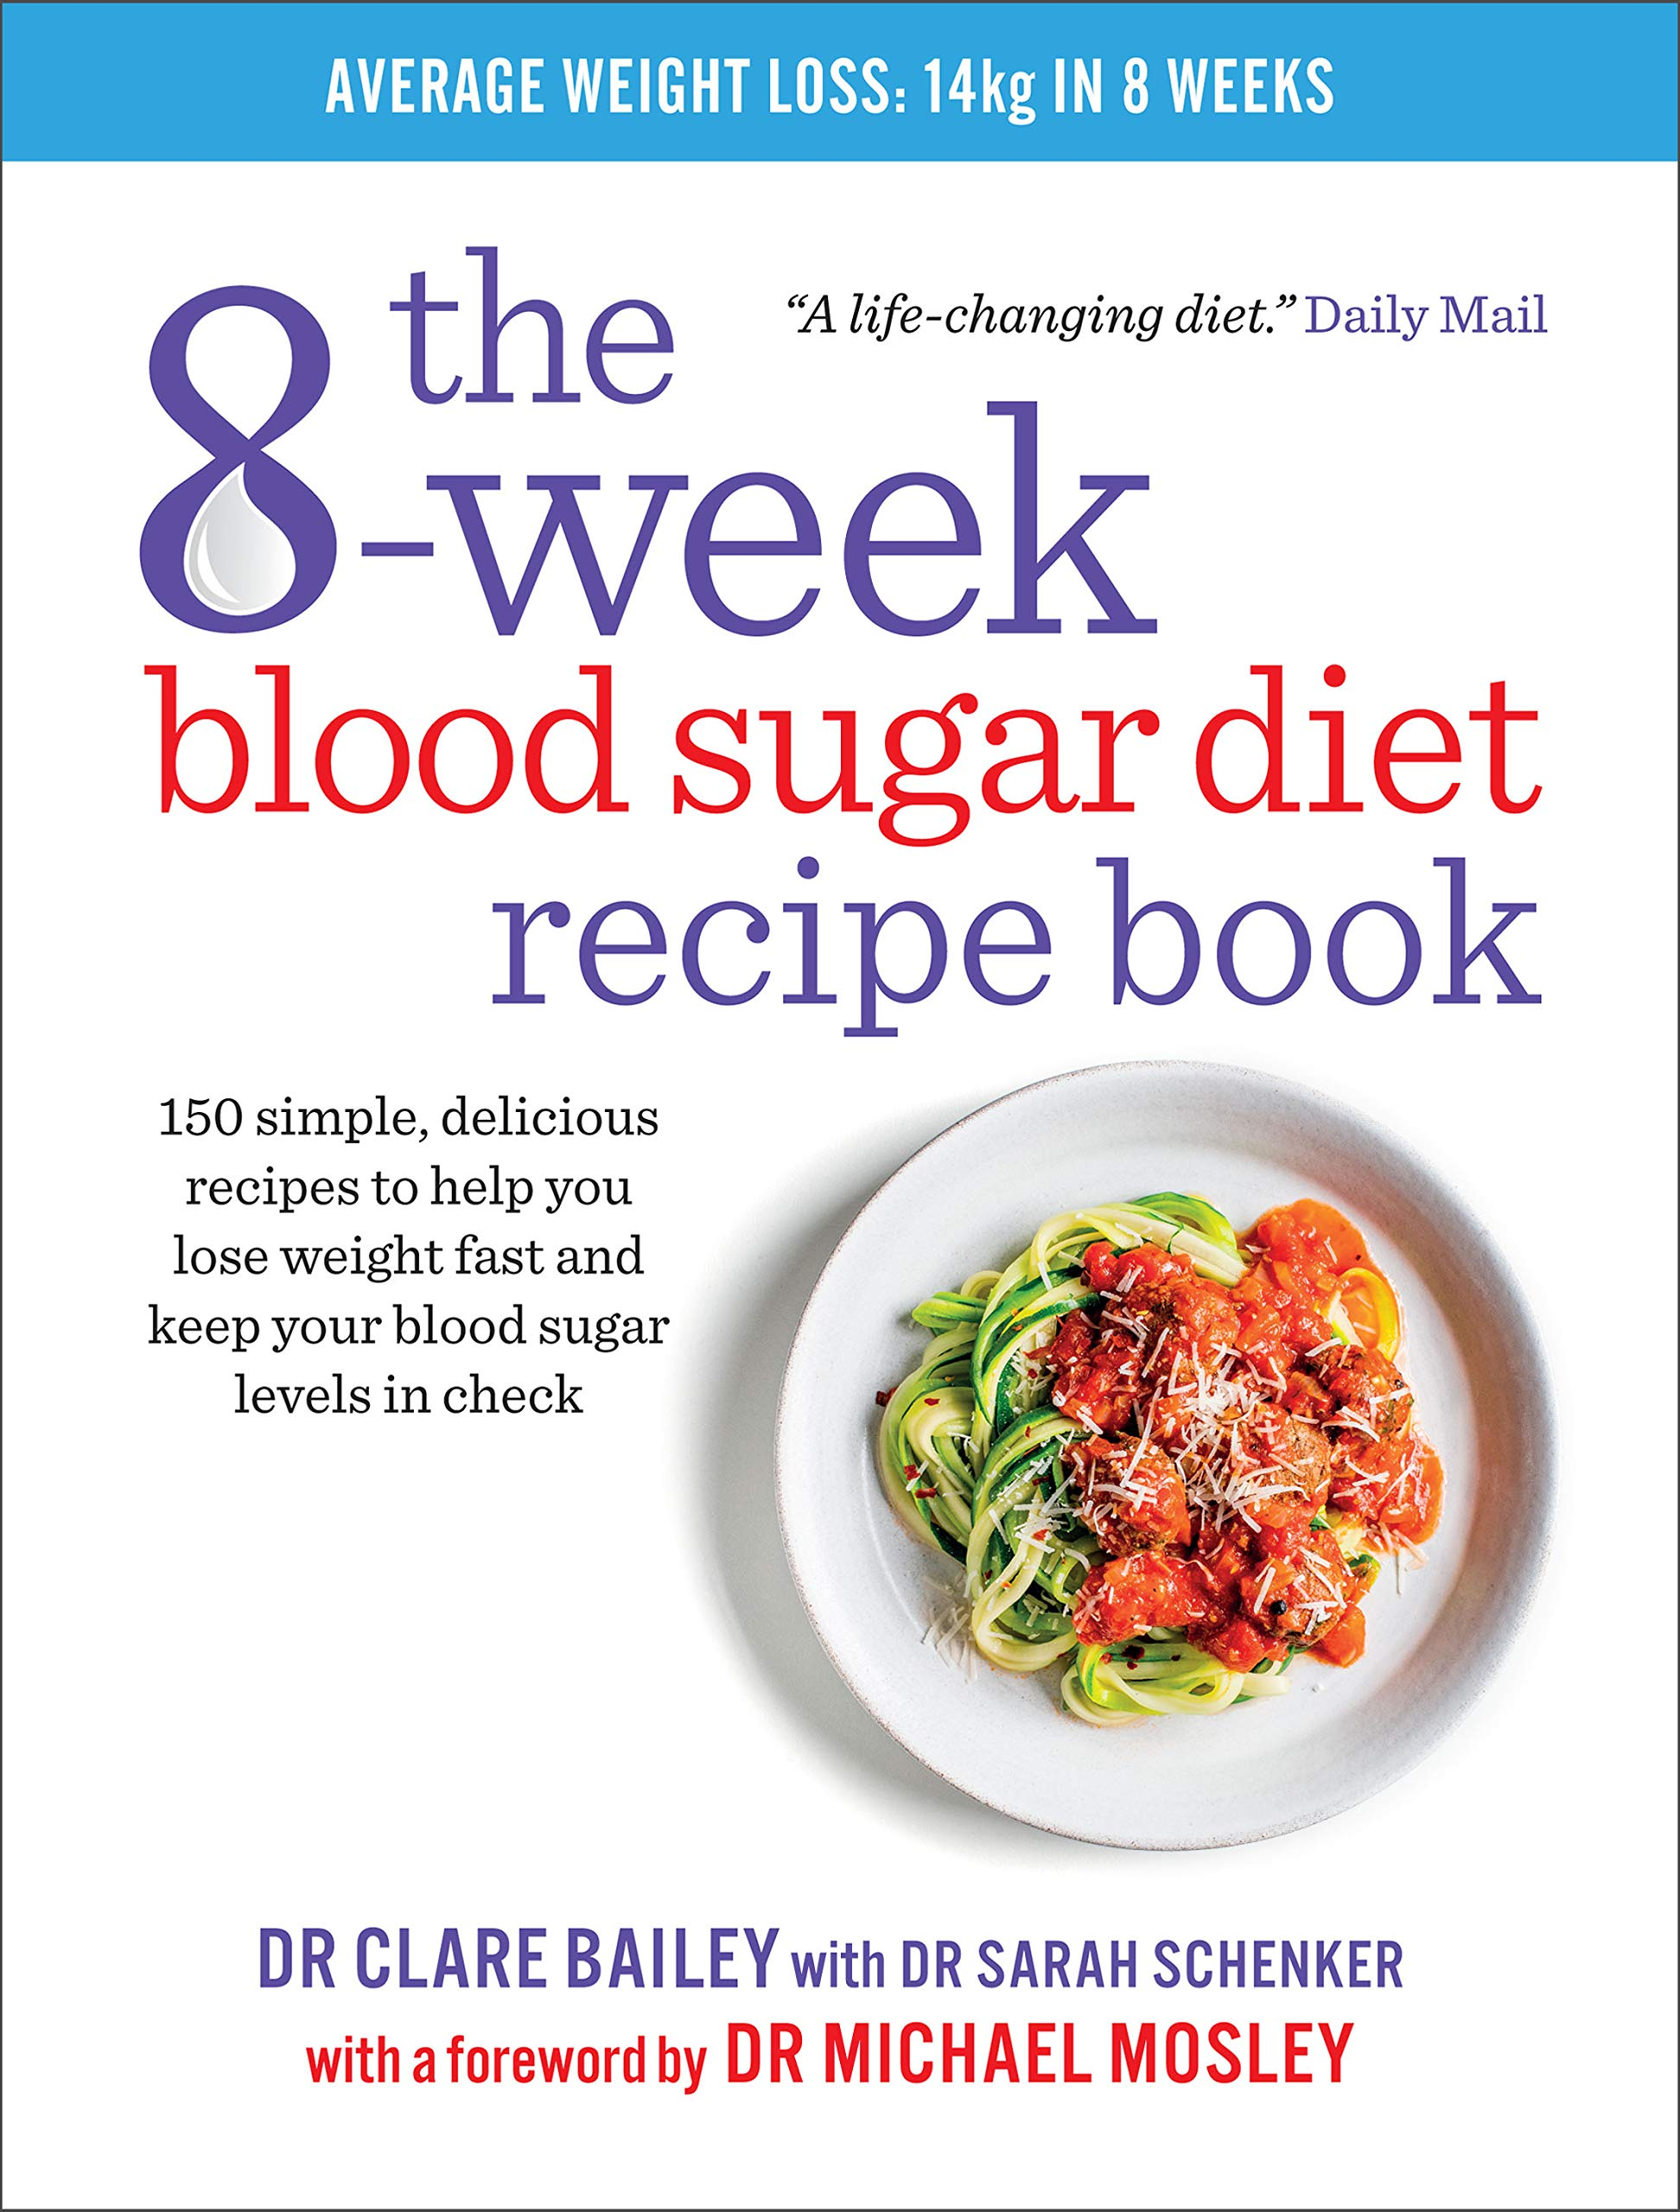 8 week blood sugar diet before and after